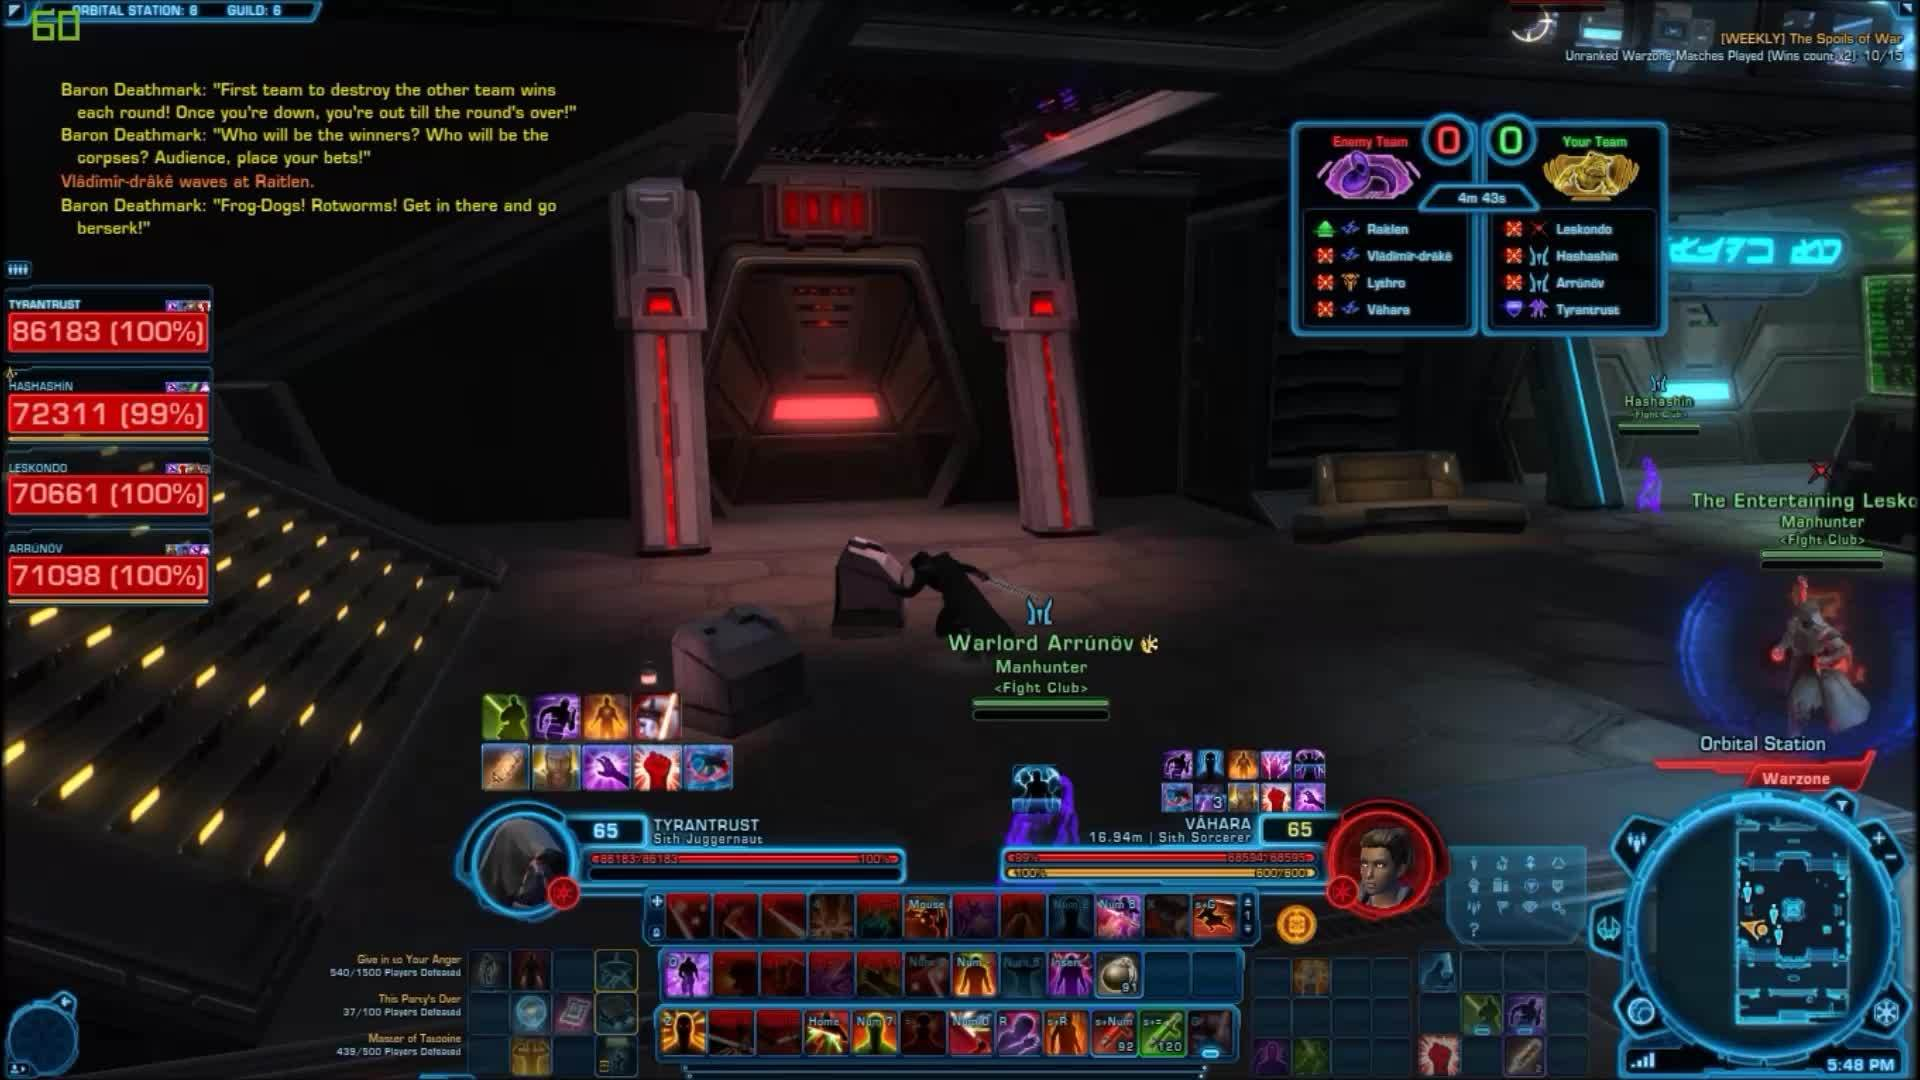 swtor, Instant Karma: Prey leaves the safety of the pack to stealth CC, proceeding to be shortly punished. (reddit) GIFs